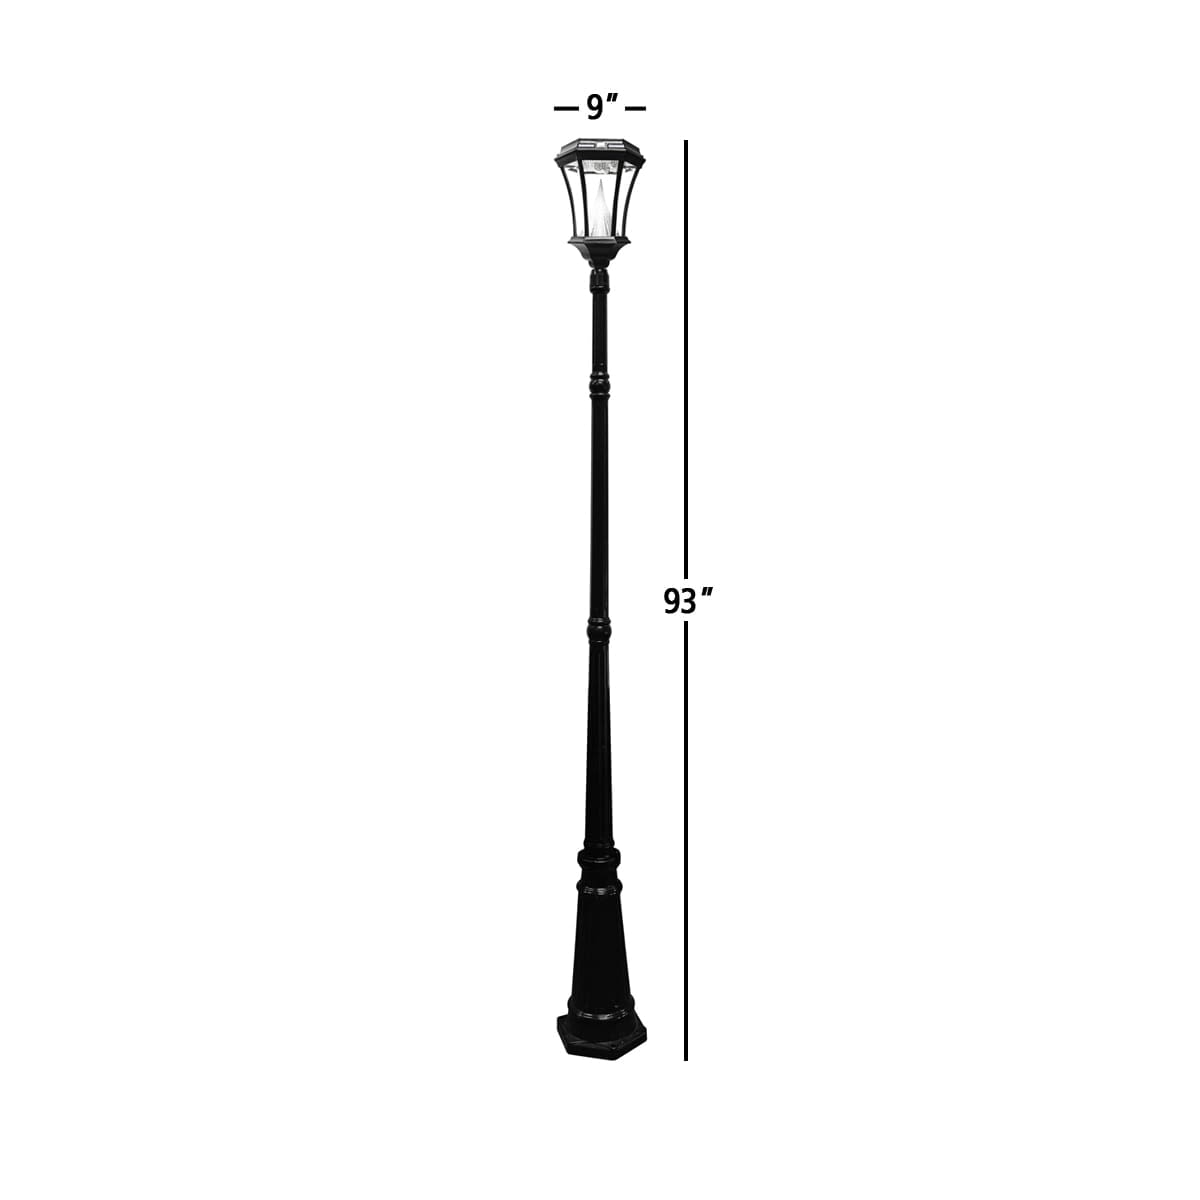 Victorian Solar Lamp Post by Gama Sonic GS-94S Measurements